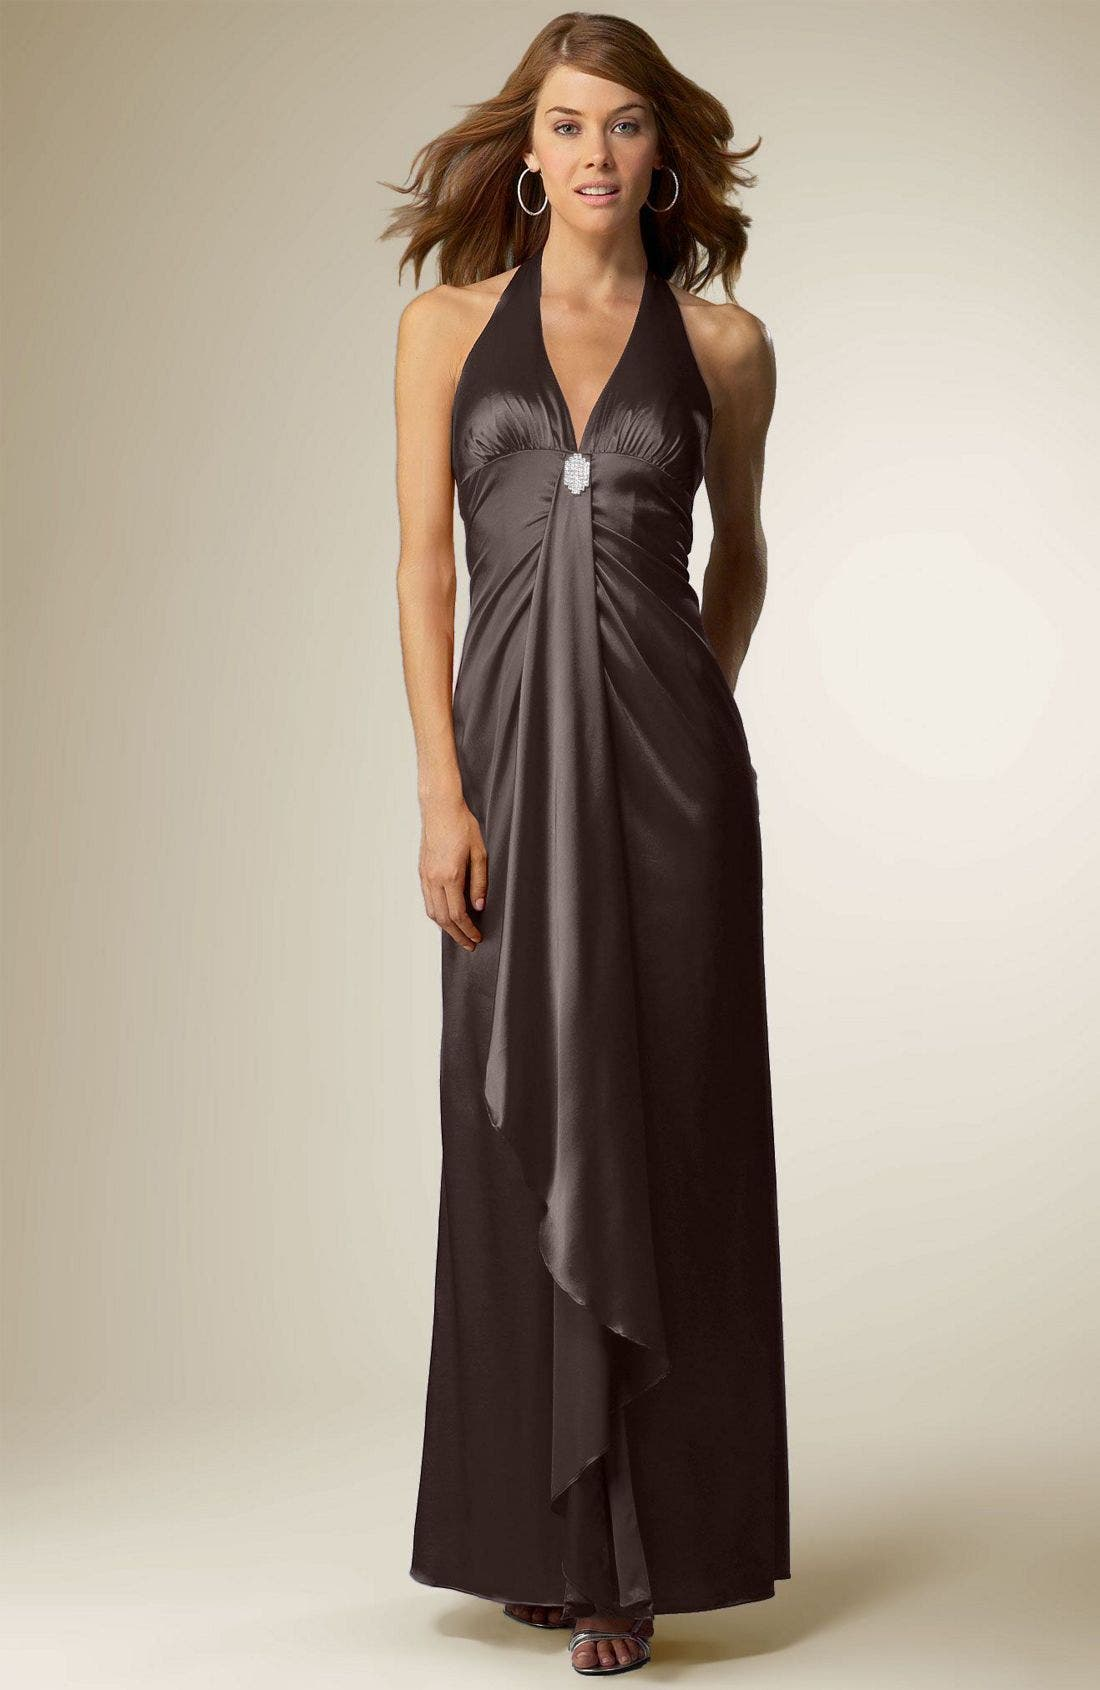 Main Image - Sean Collection Stretch Satin Halter Gown with Brooch